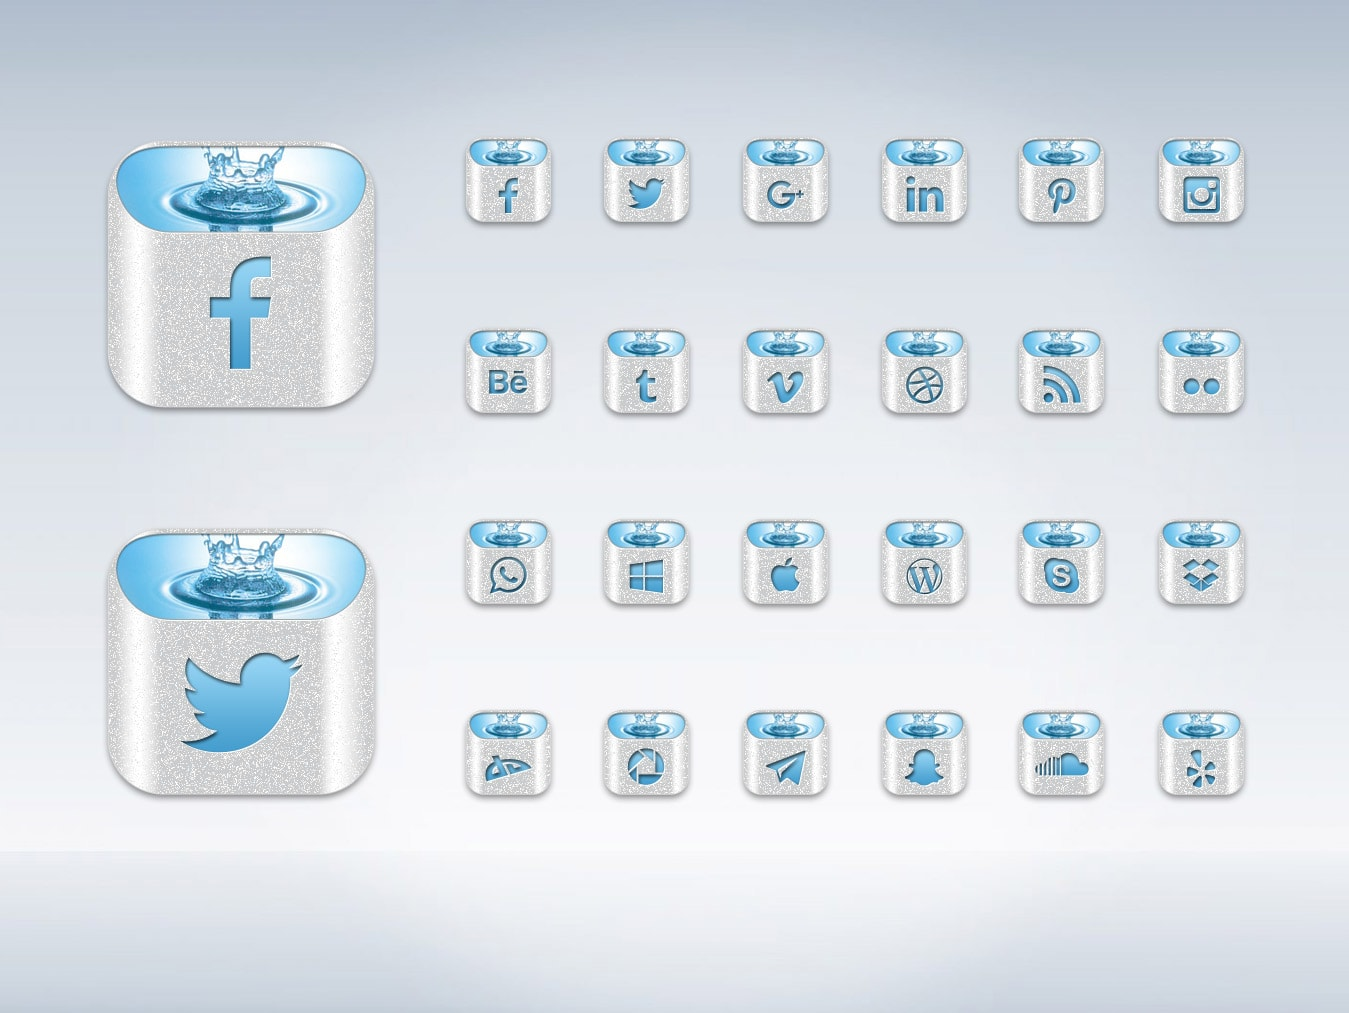 Free social media icons full graphic psd file